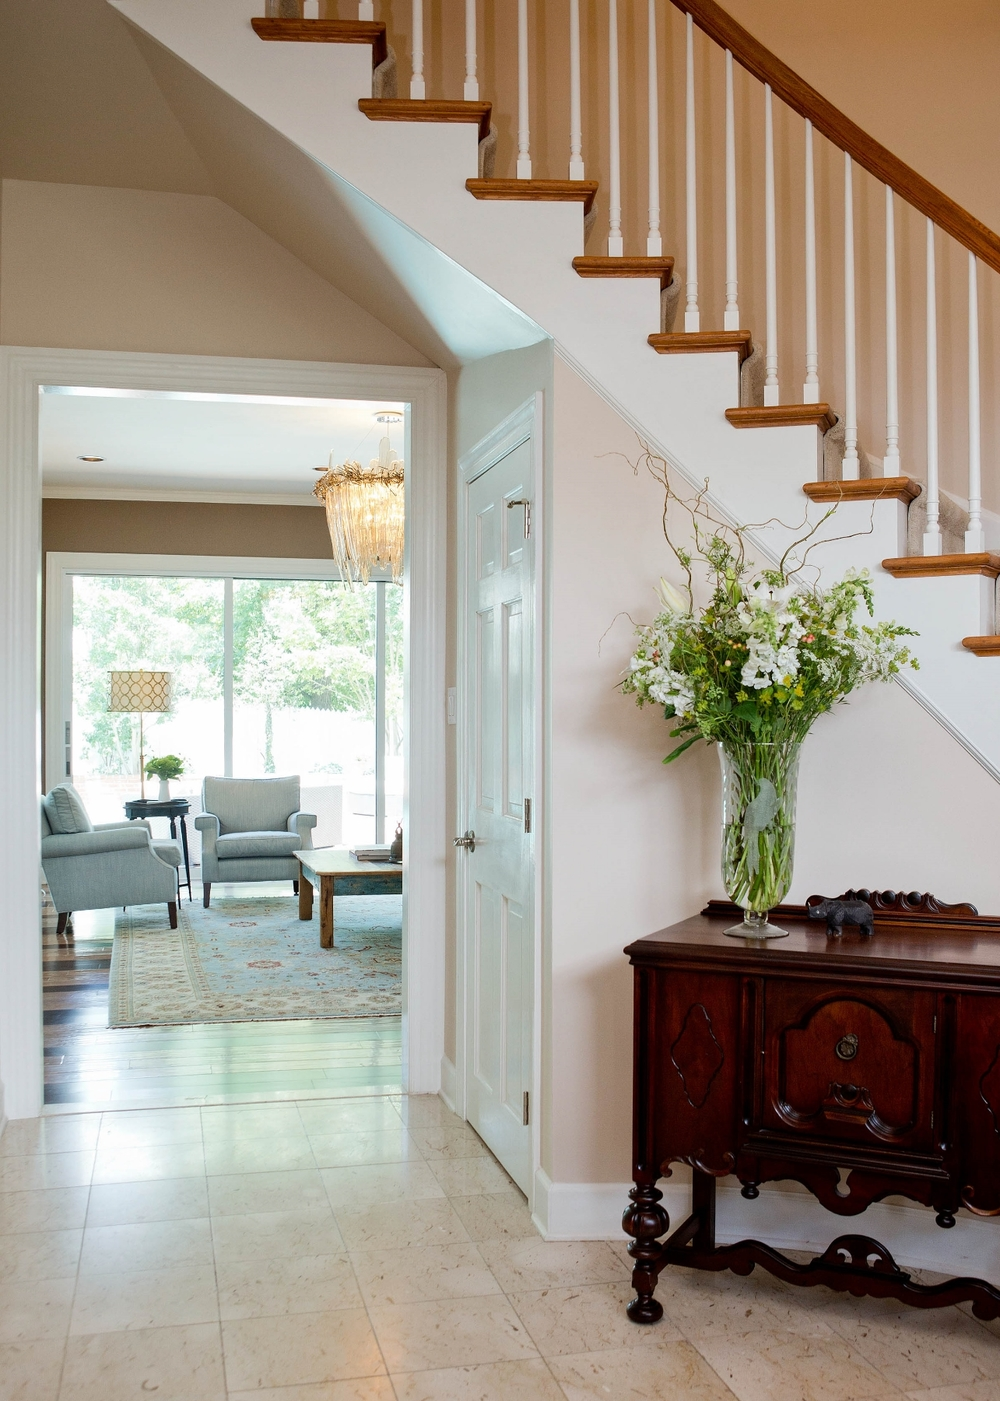 Beautiful classy entrance with curved stairs. Winchester, Virginia beautiful homes. Photo: Matthew Lofton